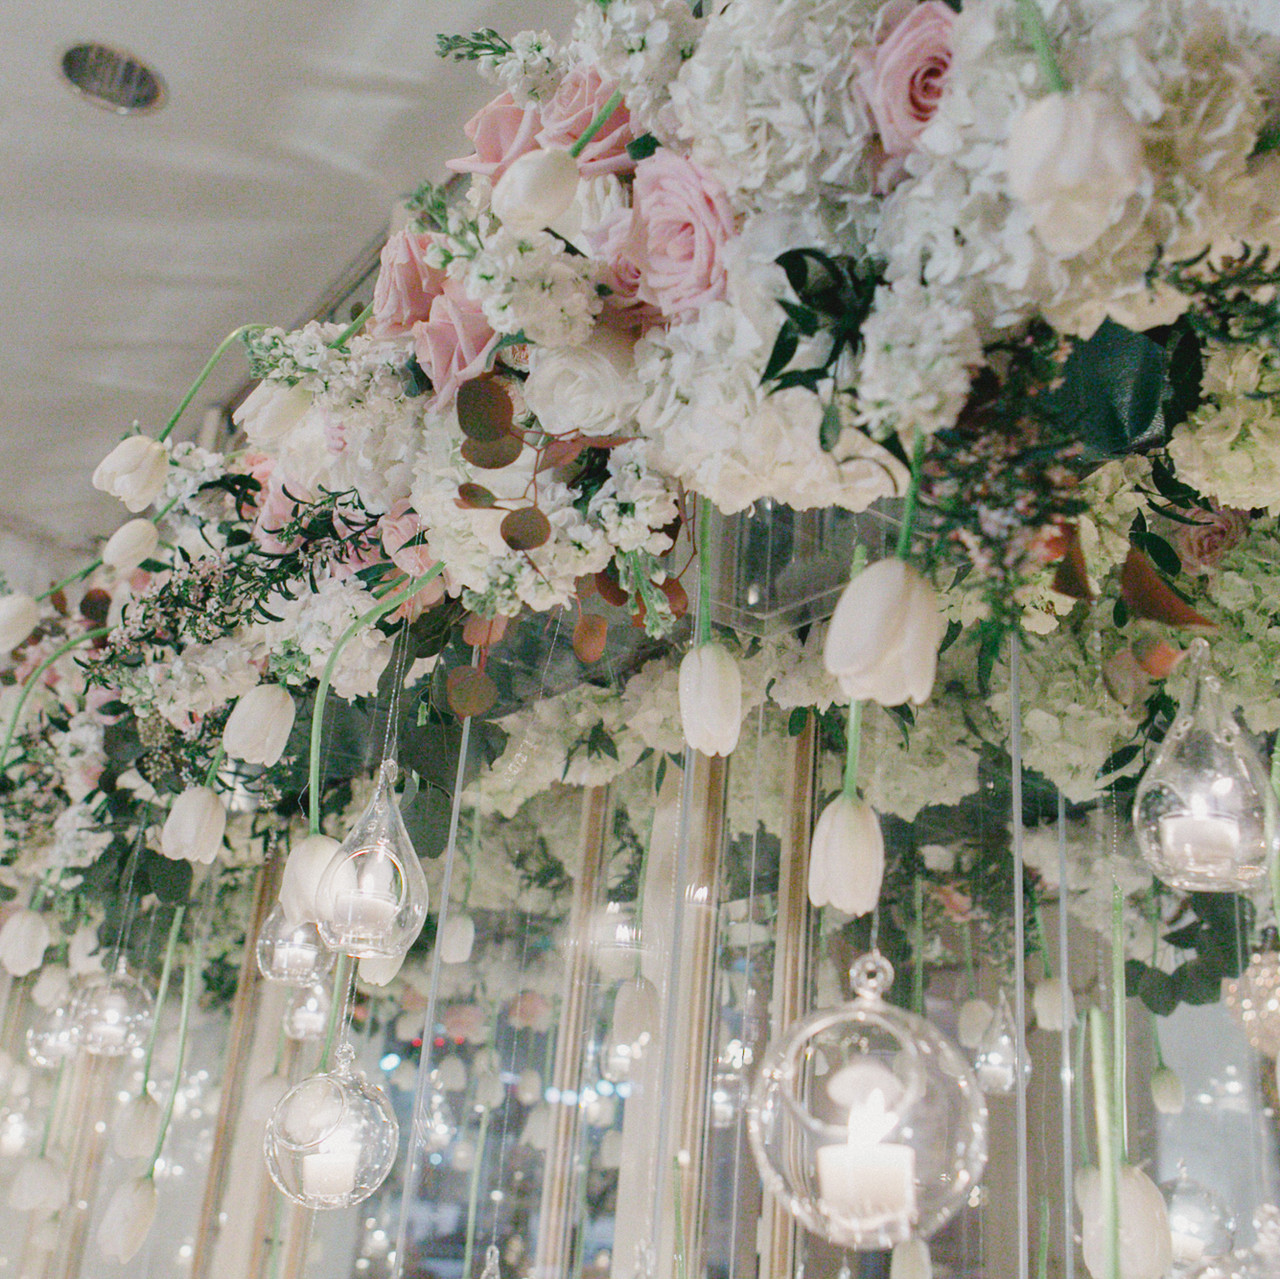 Gorgeous hanging flowers